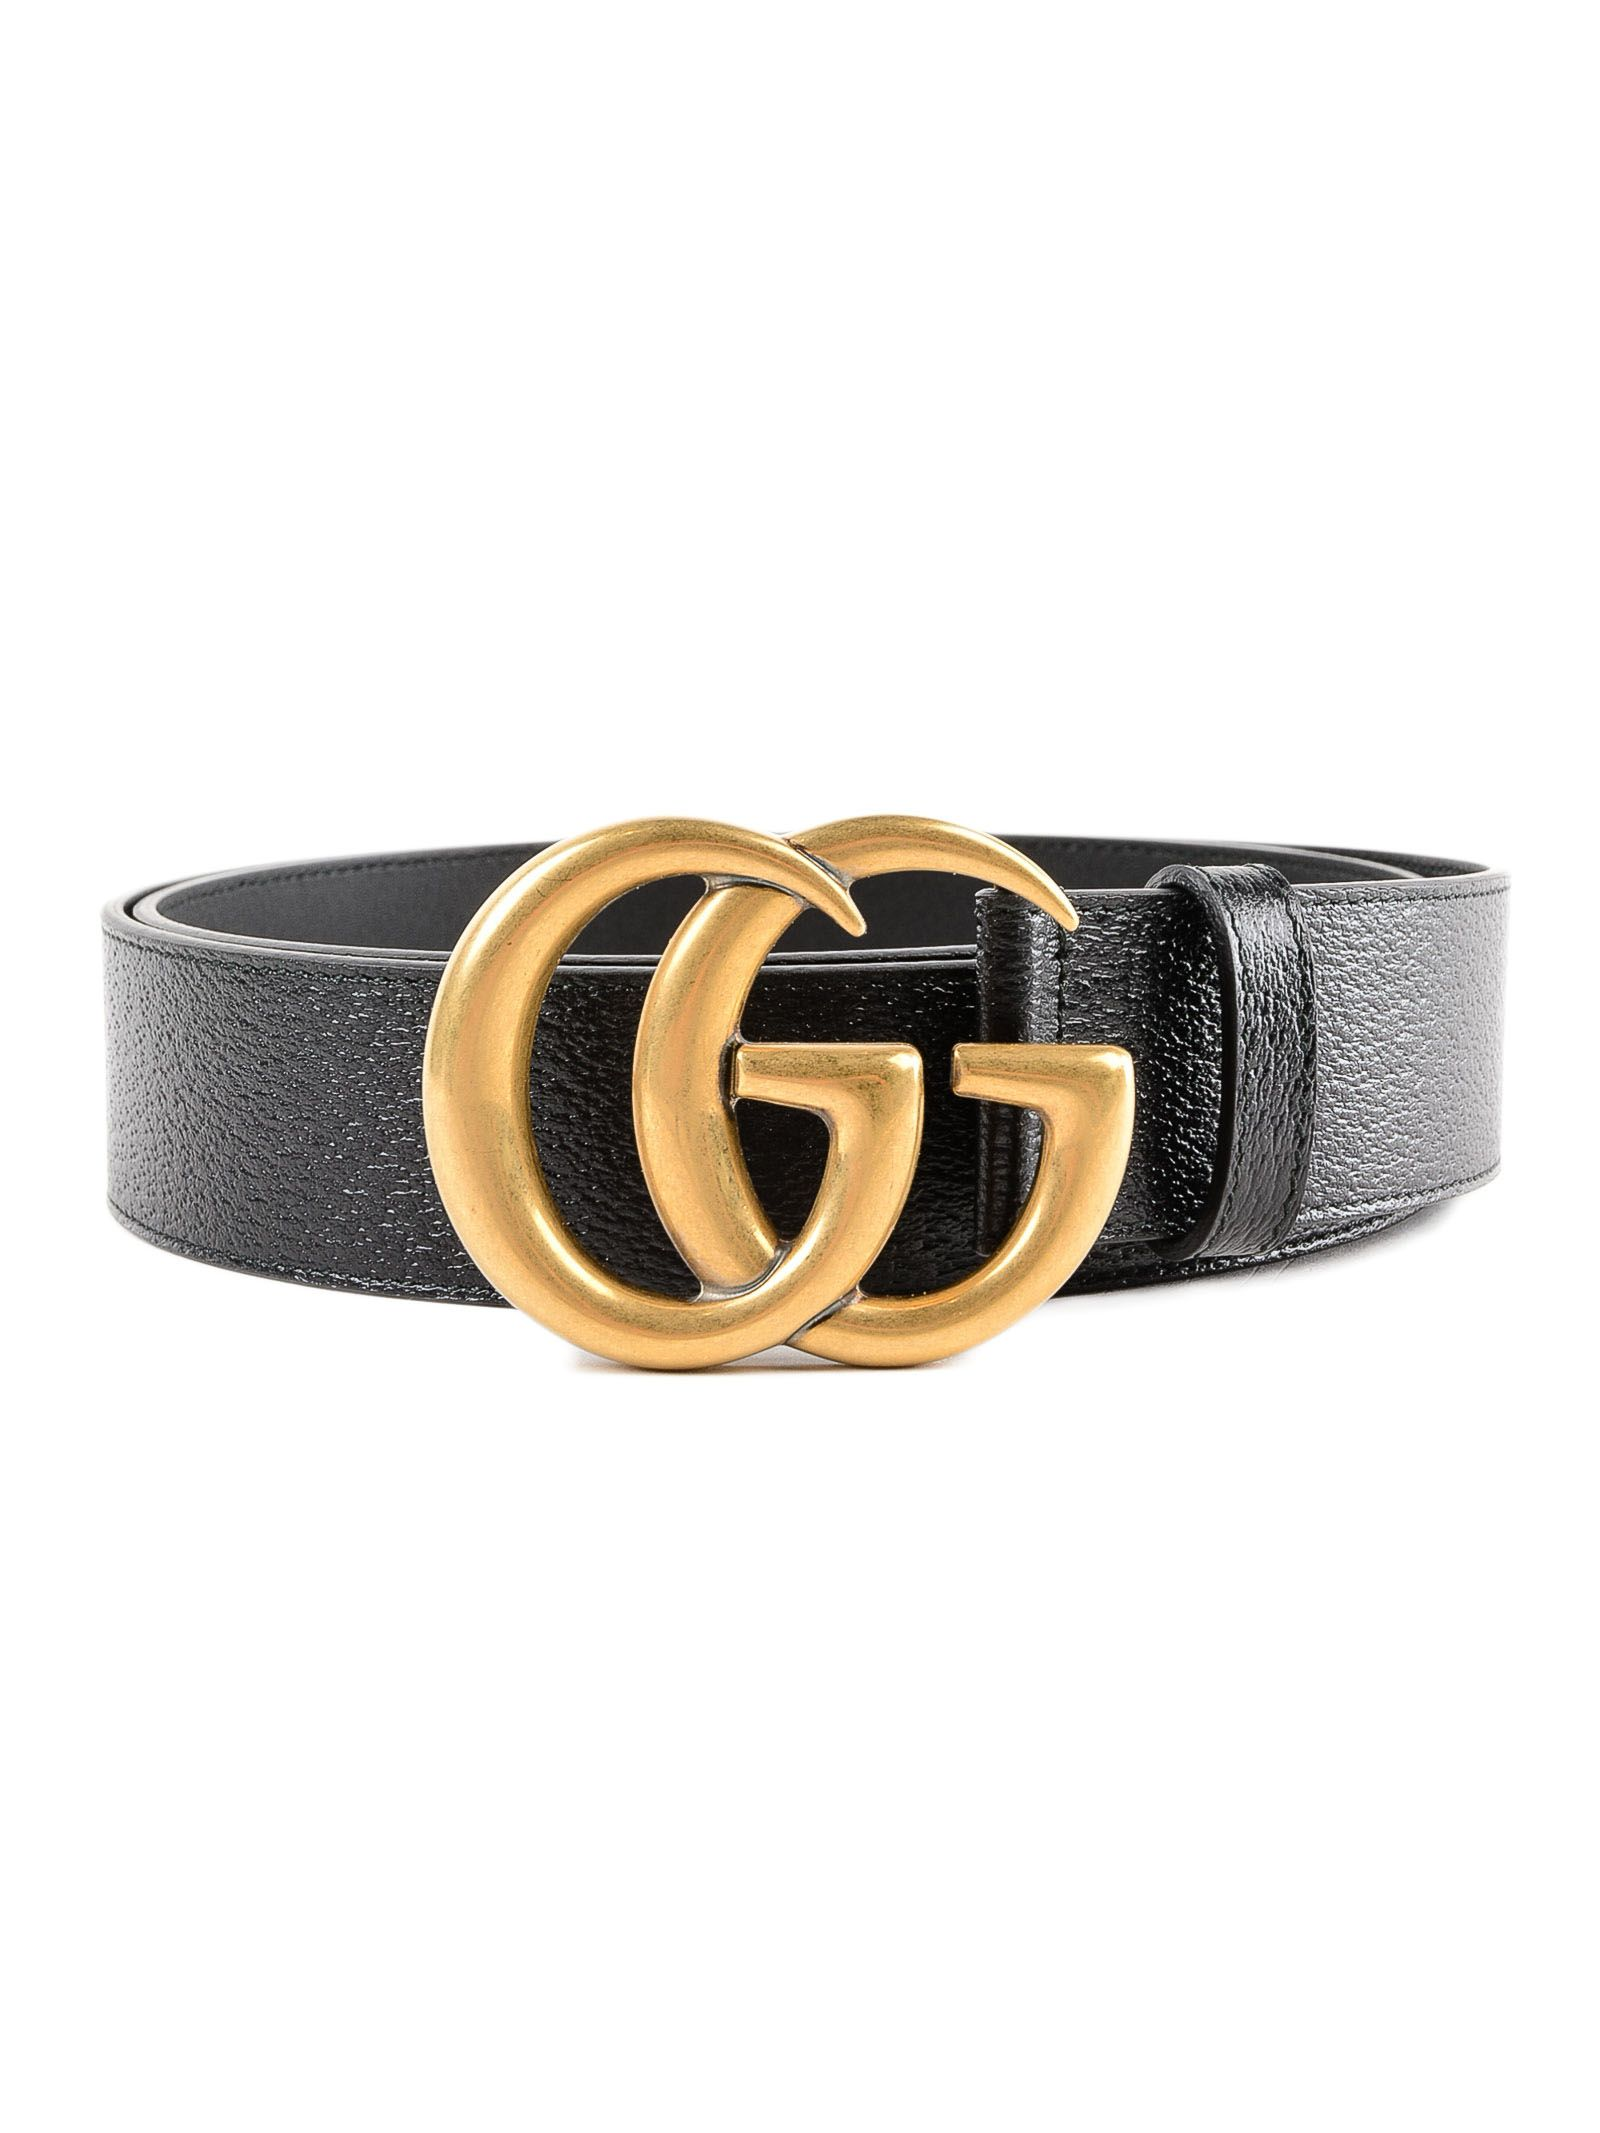 afa7ba1b1d3 FAKE GUCCI BELT- this is not a link